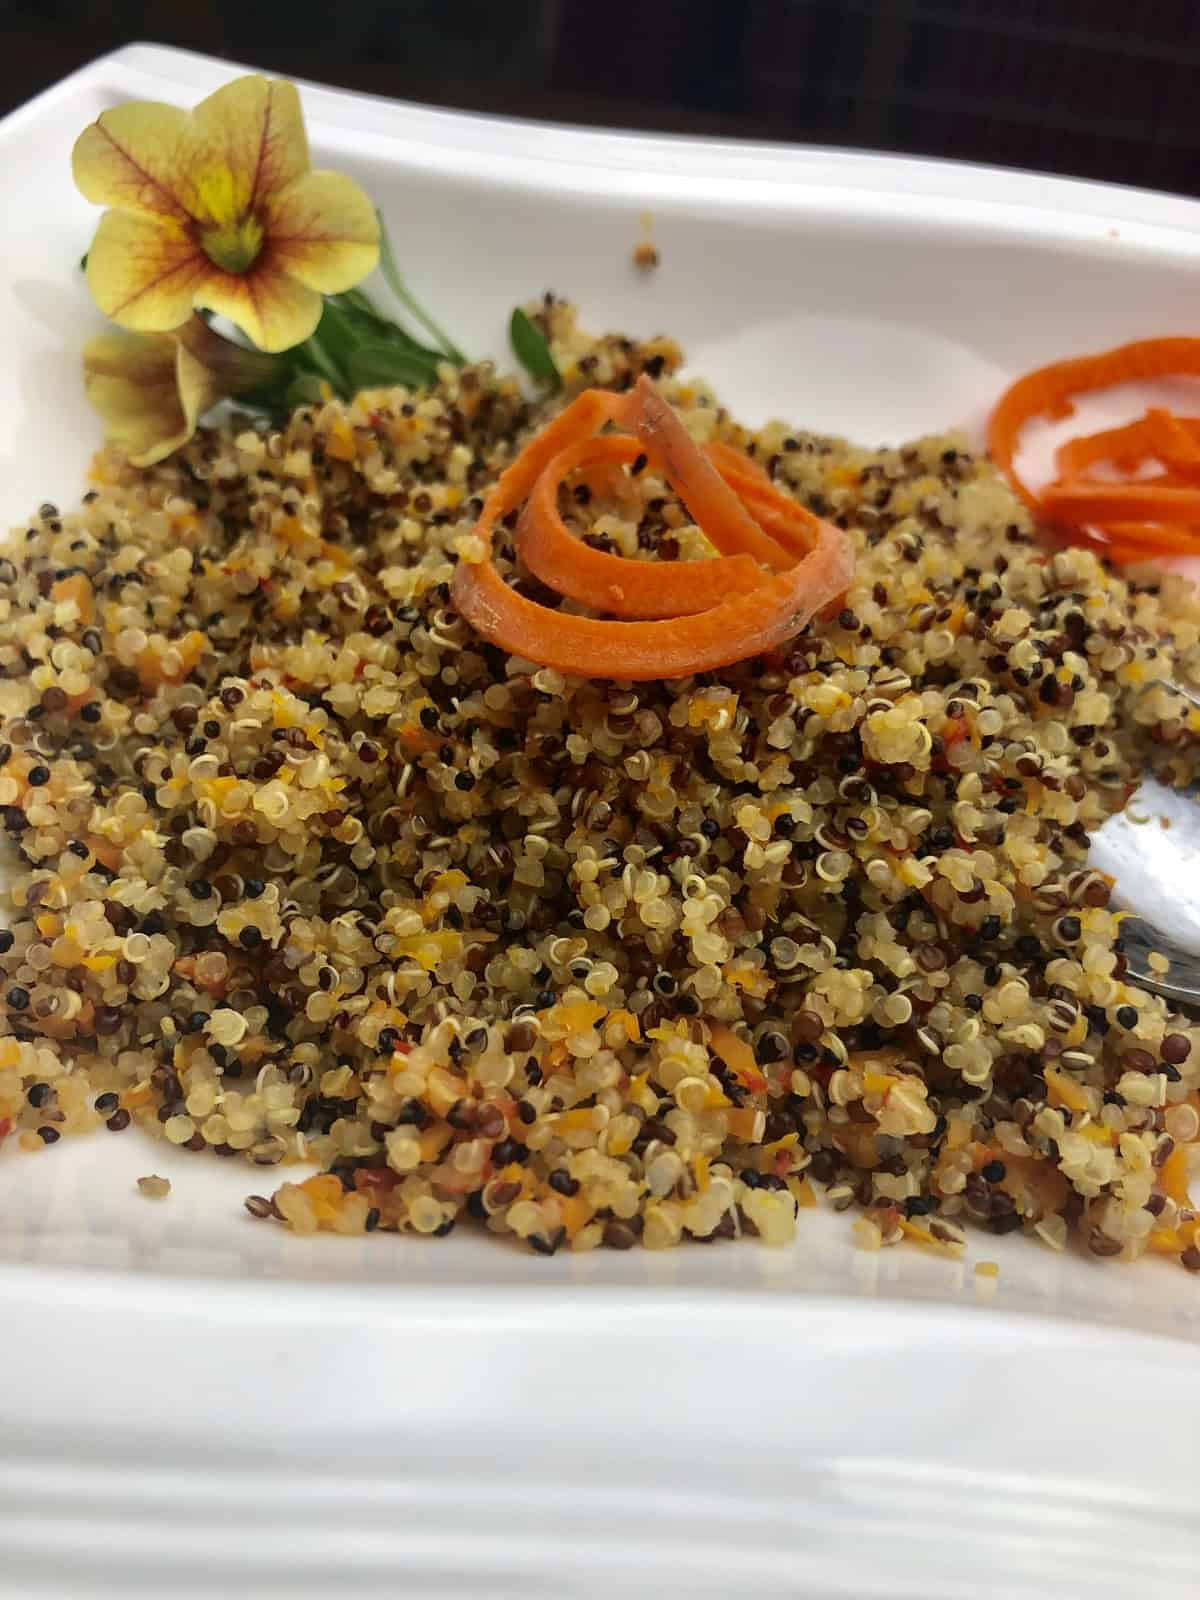 Veggie quinoa with carrot spirals in a white bowl with a yellow flower